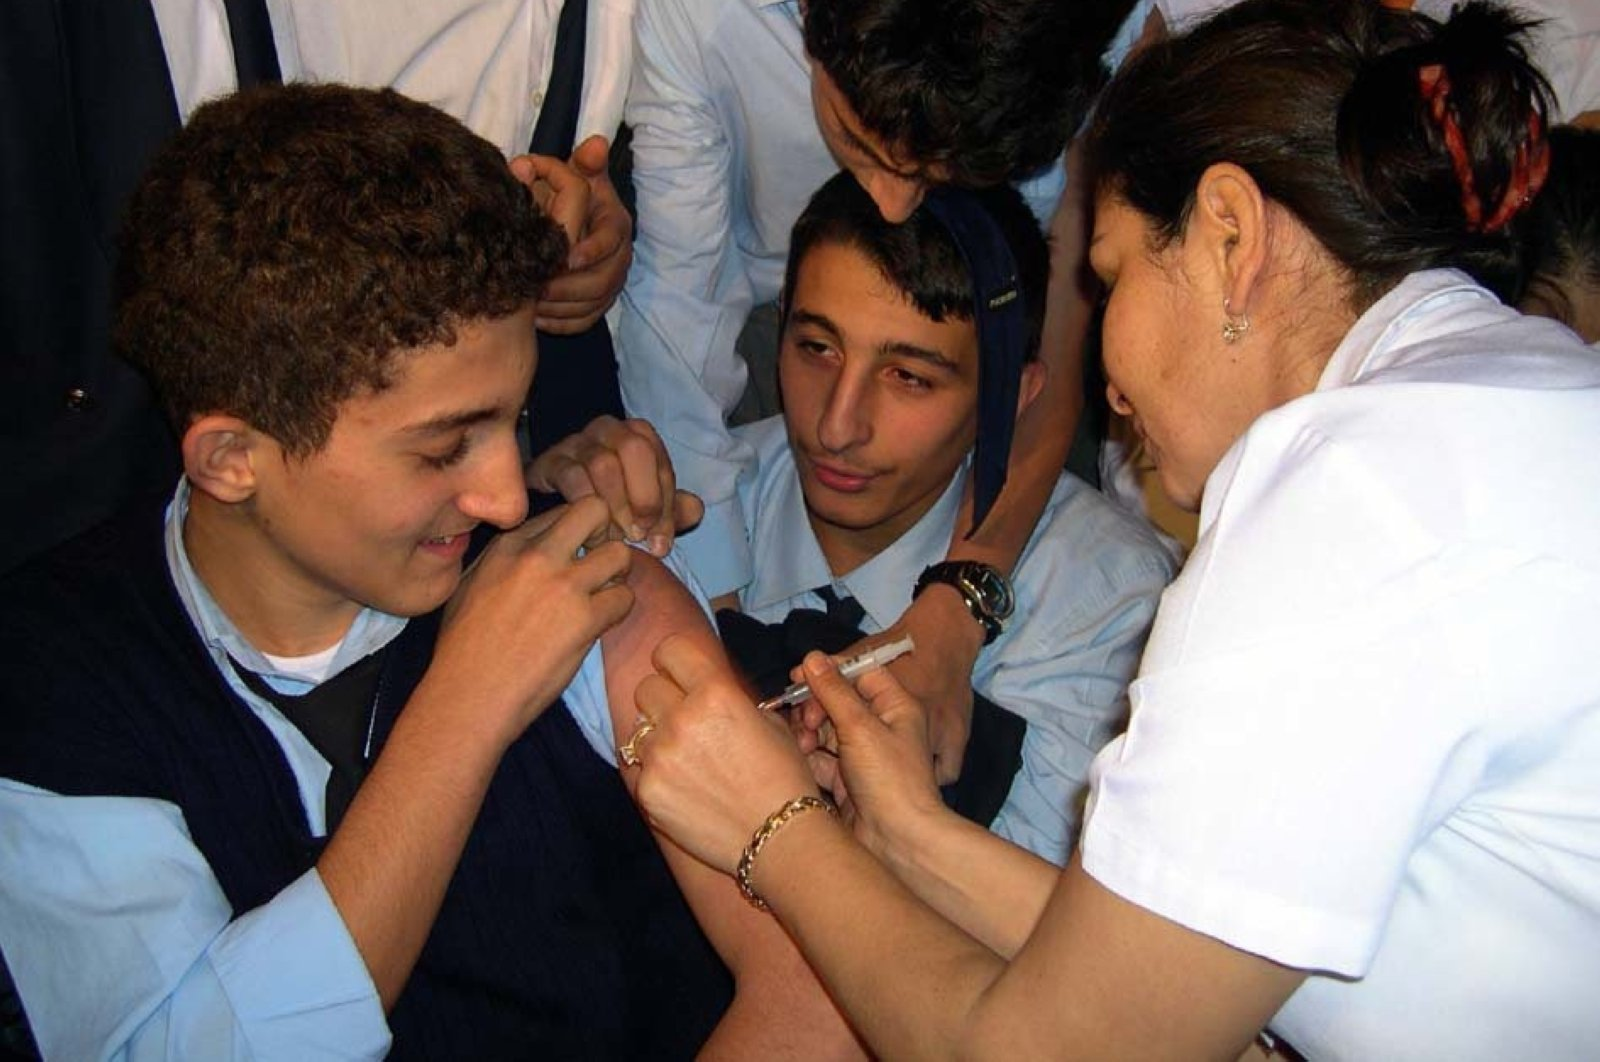 A high school student gets vaccinated against hepatitis B in the Kartal district of Istanbul, Turkey, Jan. 20, 2004. (Photo by Gülcan Demirci)